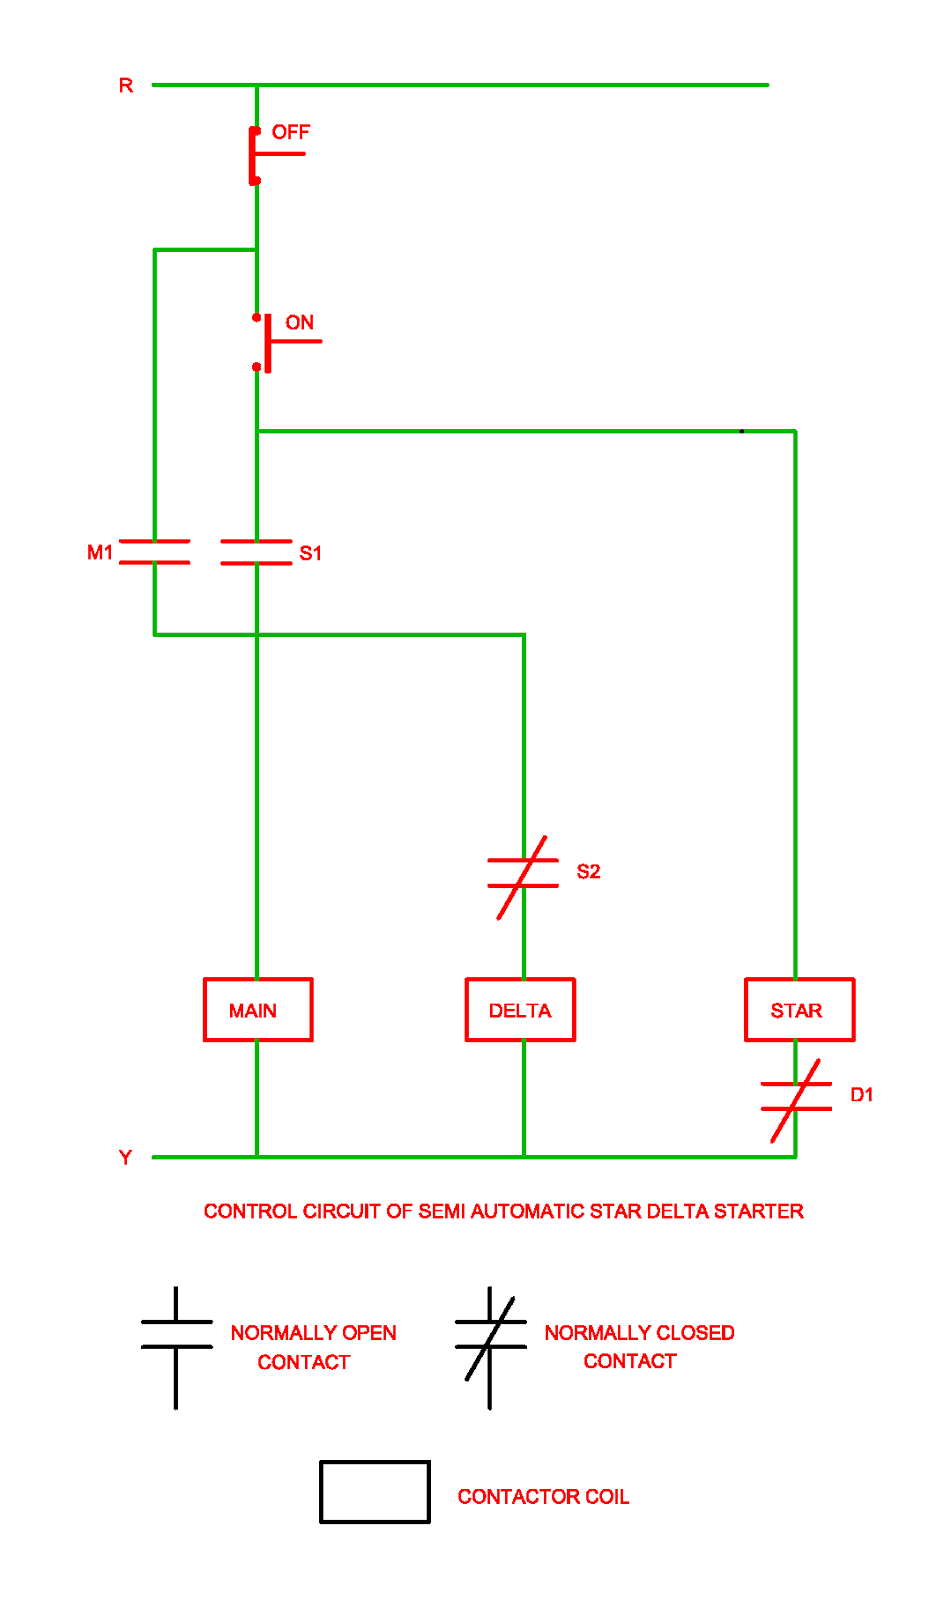 hight resolution of control circuit of semi automatic star delta starter pdf